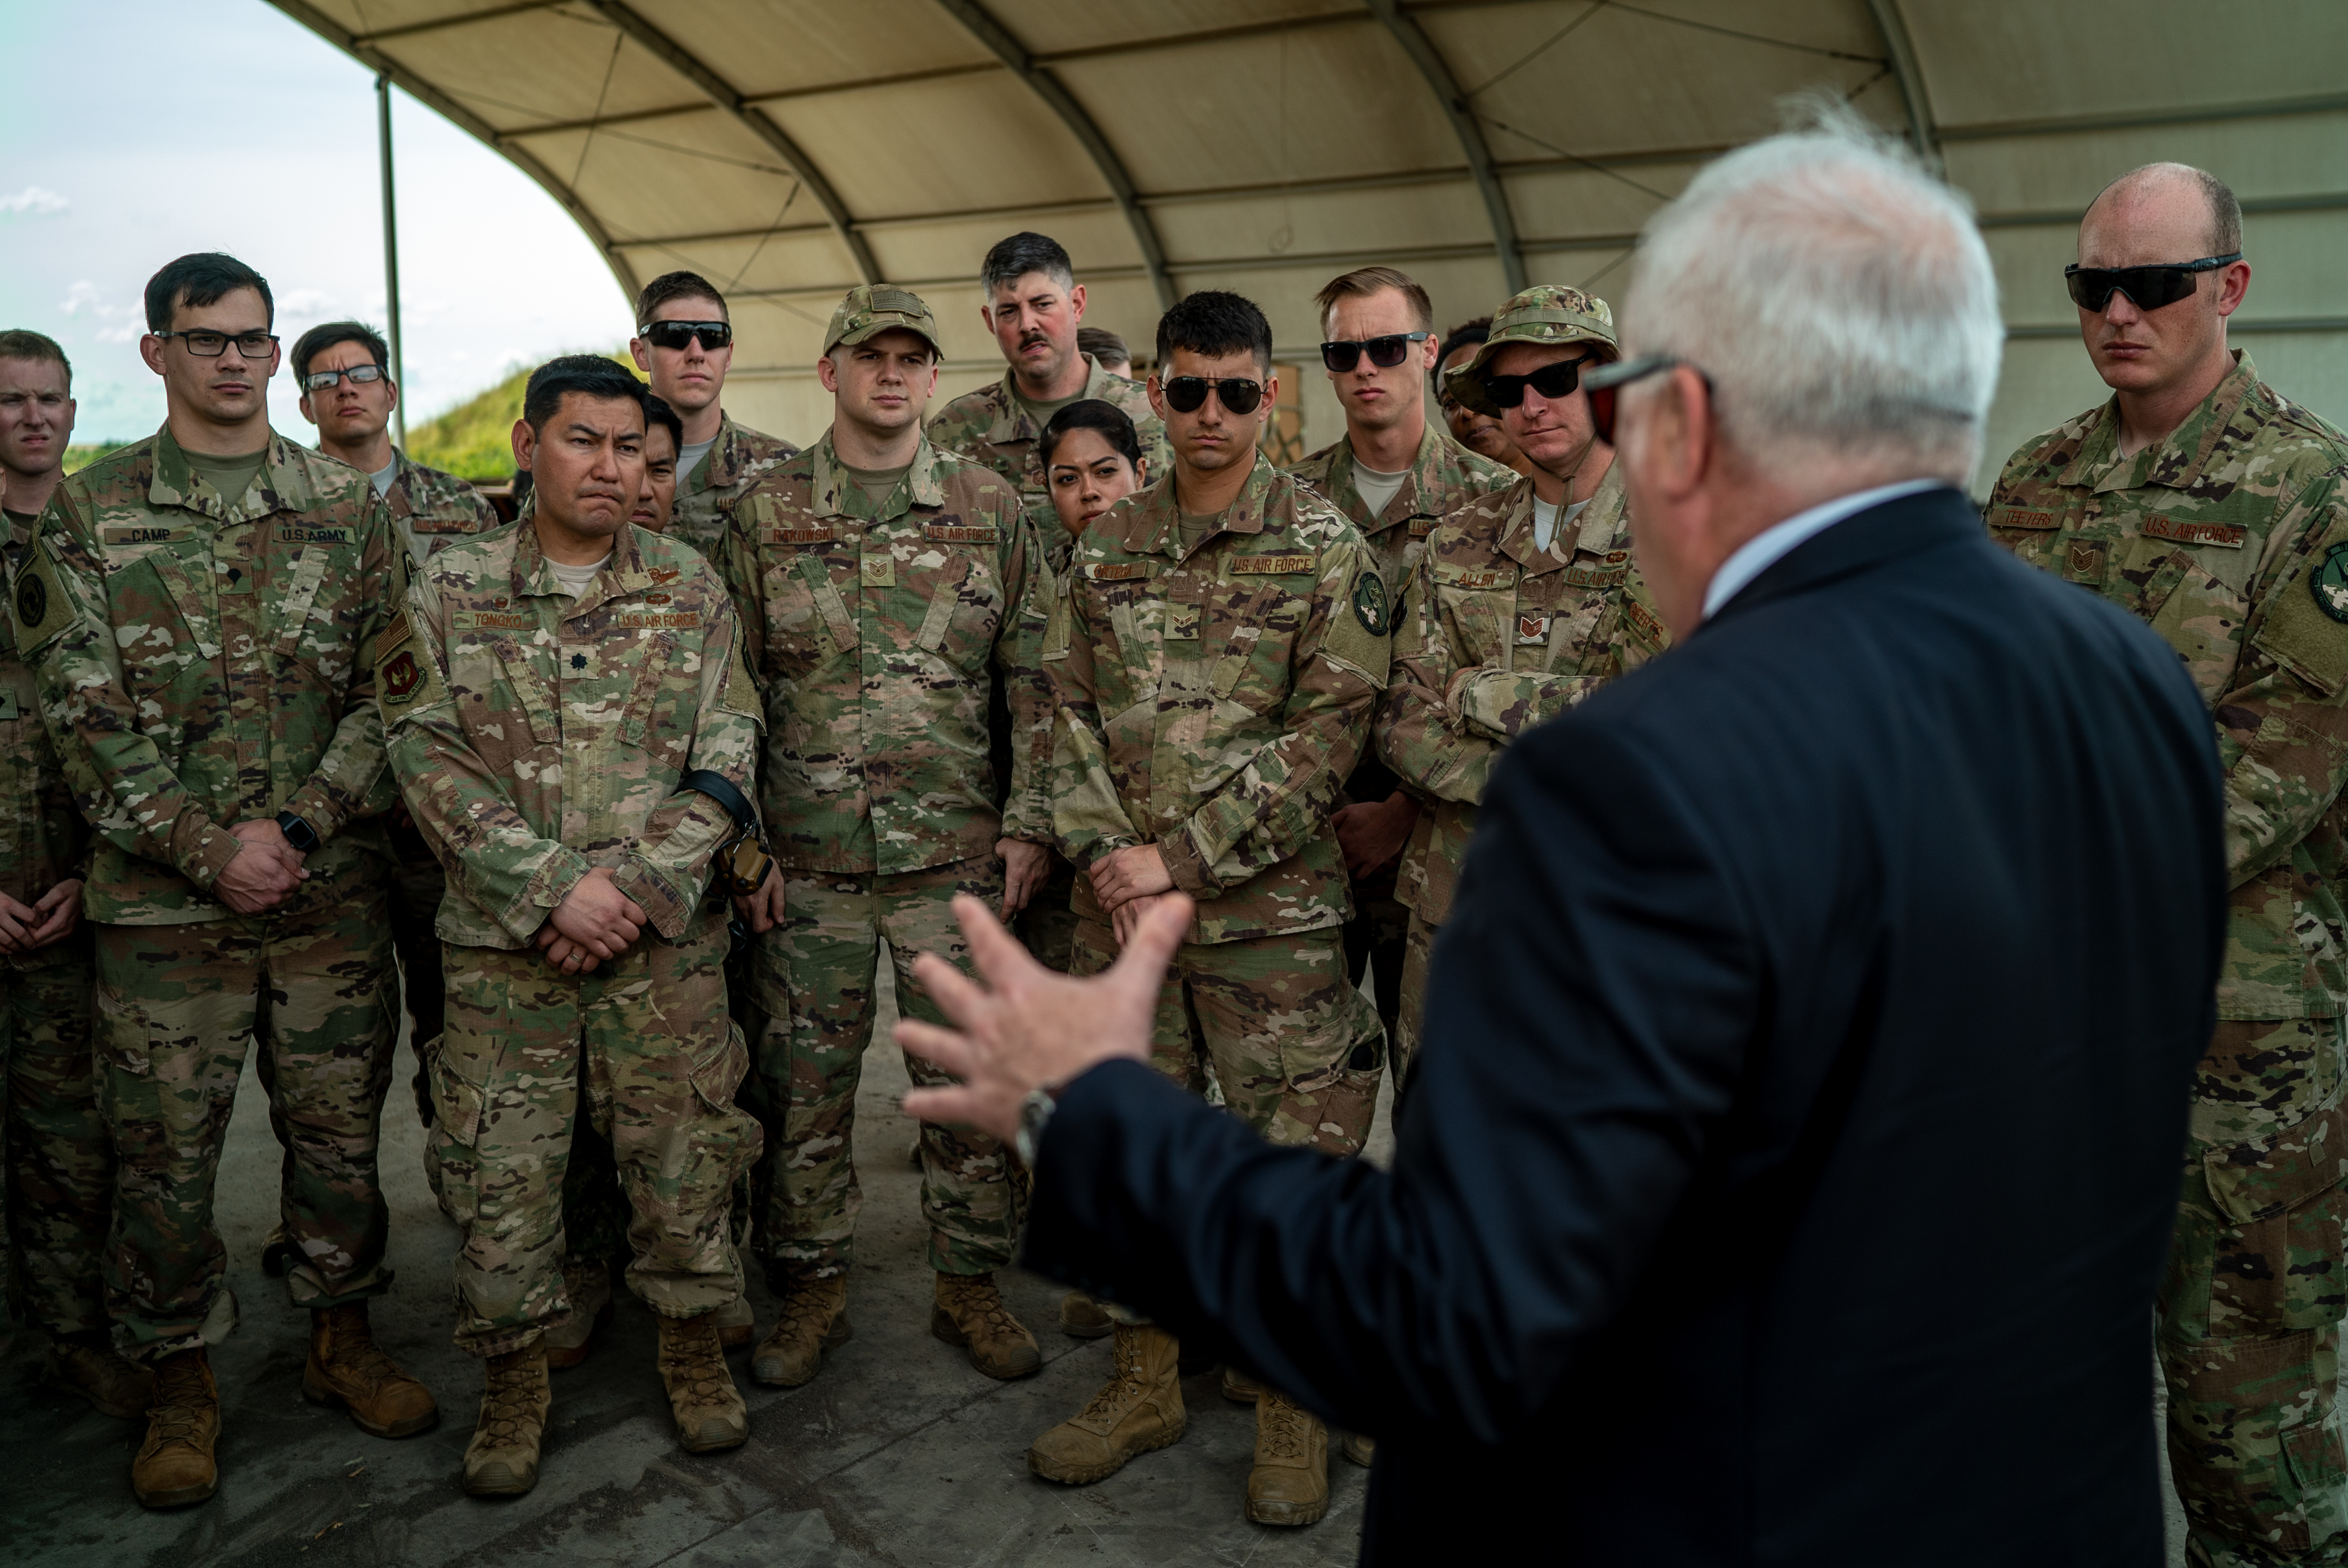 Dennis Walter Hearne, U.S. Ambassador to the Republic of Mozambique, speaks to U.S. service members assigned to Combined Joint Task Force-Horn of Africa (CJTF-HOA) in Maputo, Mozambique, April 11, 2019. CJTF-HOA led U.S. Department of Defense Cyclone Idai relief efforts in support of U.S. Agency for International Development's (USAID) Disaster Assistance Response Team. The task force helped meet requirements identified by USAID assessment teams and humanitarian organizations working in the region by providing logistics support and manpower to USAID at the request of the Government of the Republic of Mozambique. (U.S. Air Force photo by Tech. Sgt. Thomas Grimes)